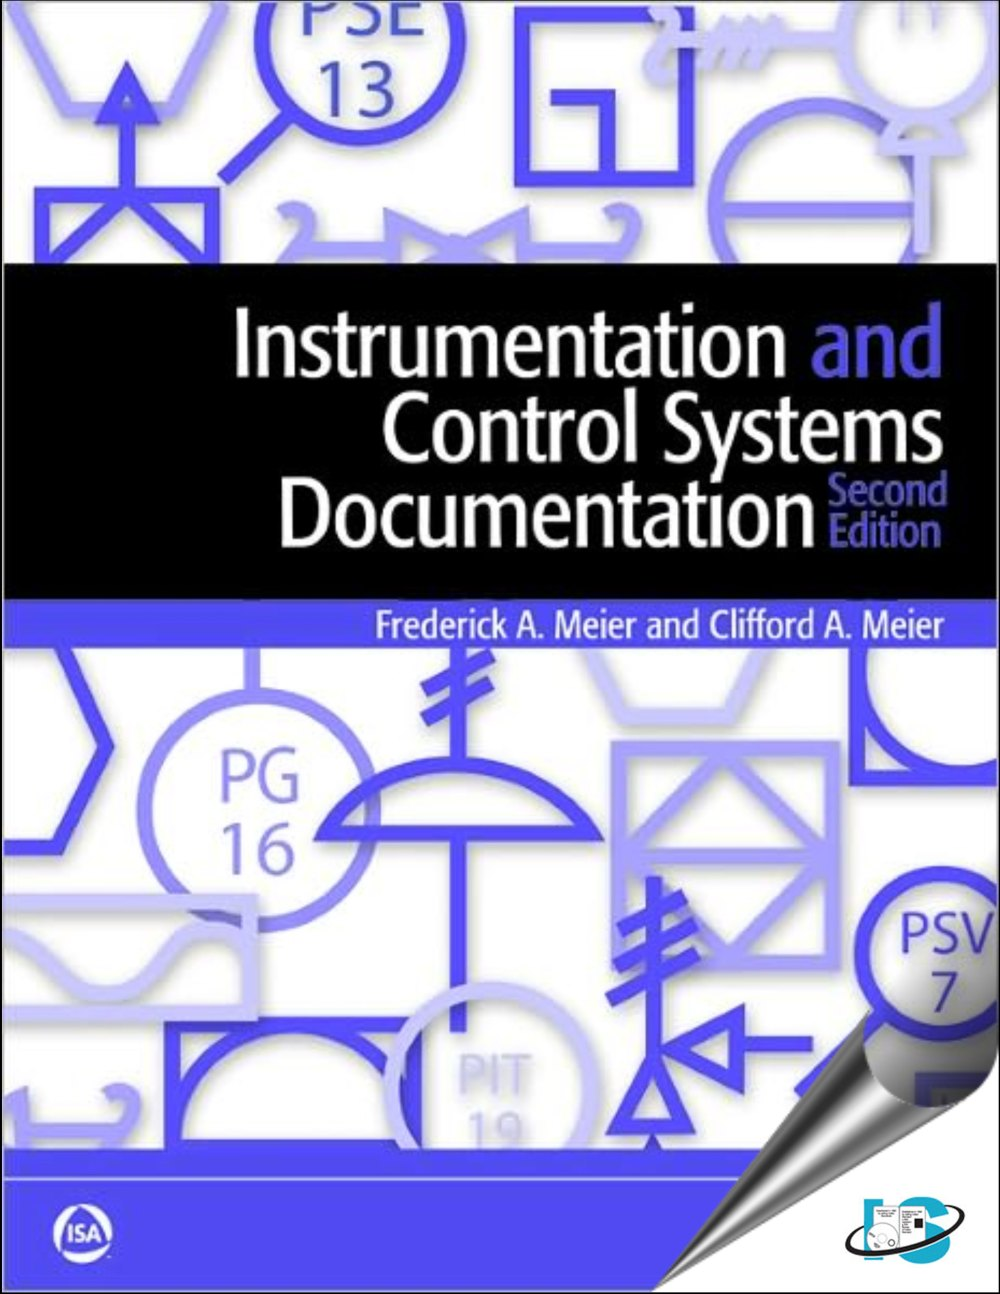 medium resolution of instrumentation and control systems documentation 2nd edition clifford a meier frederick a meier 1936007517 9781936007516